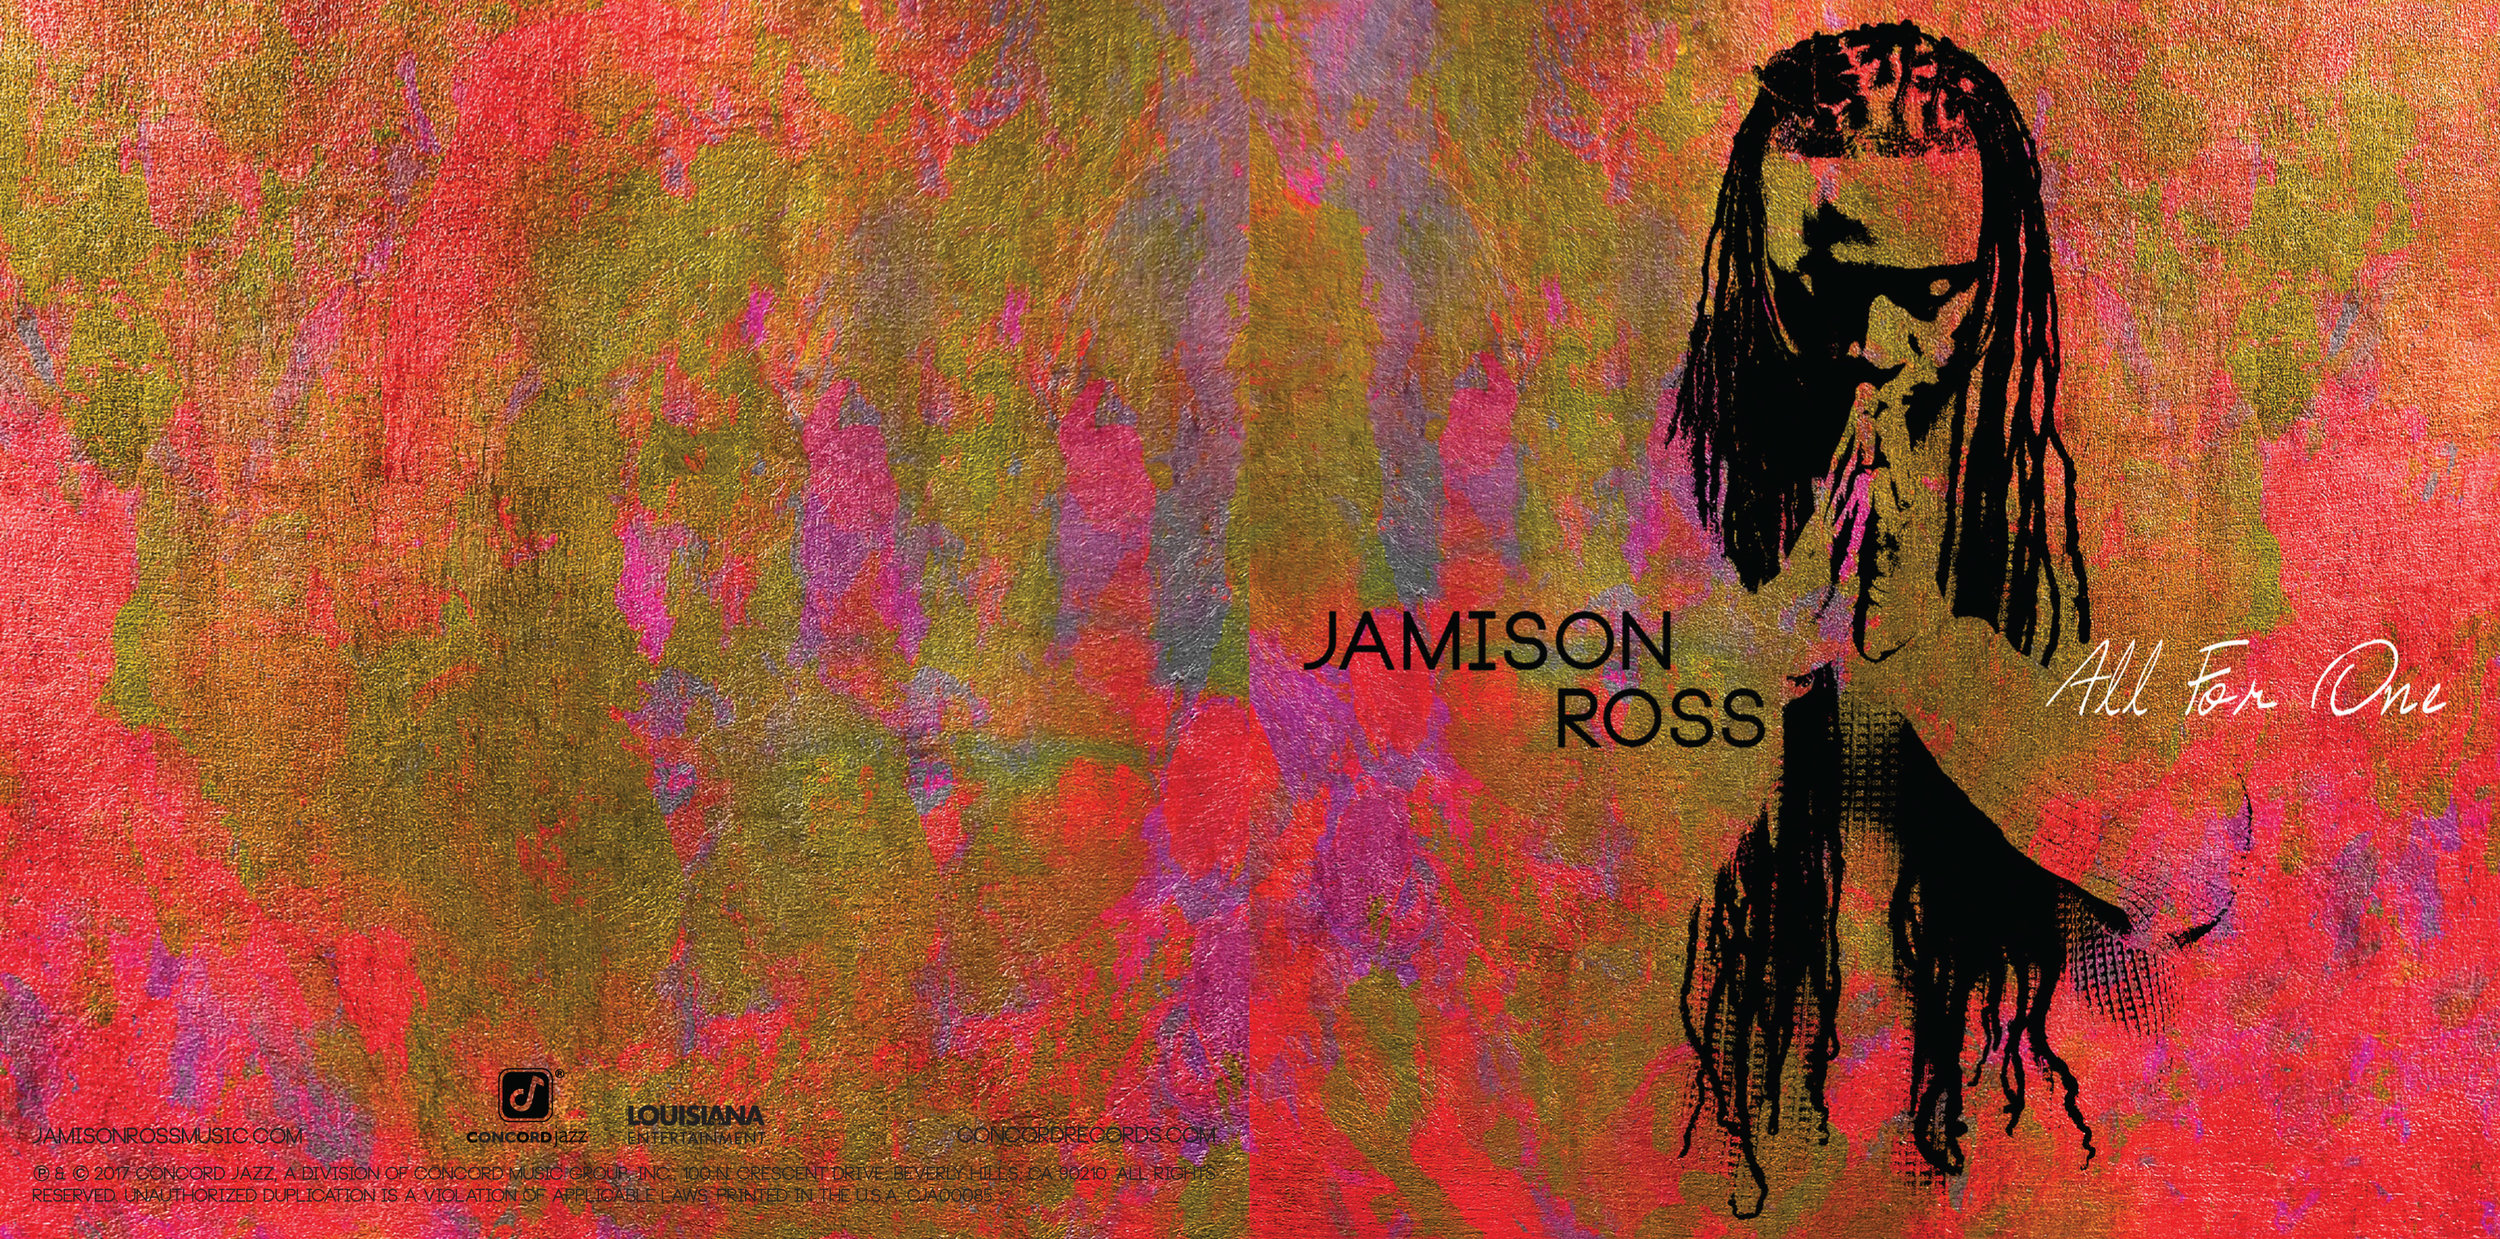 JAMISON ROSS BOOKLET-REV-1.jpg